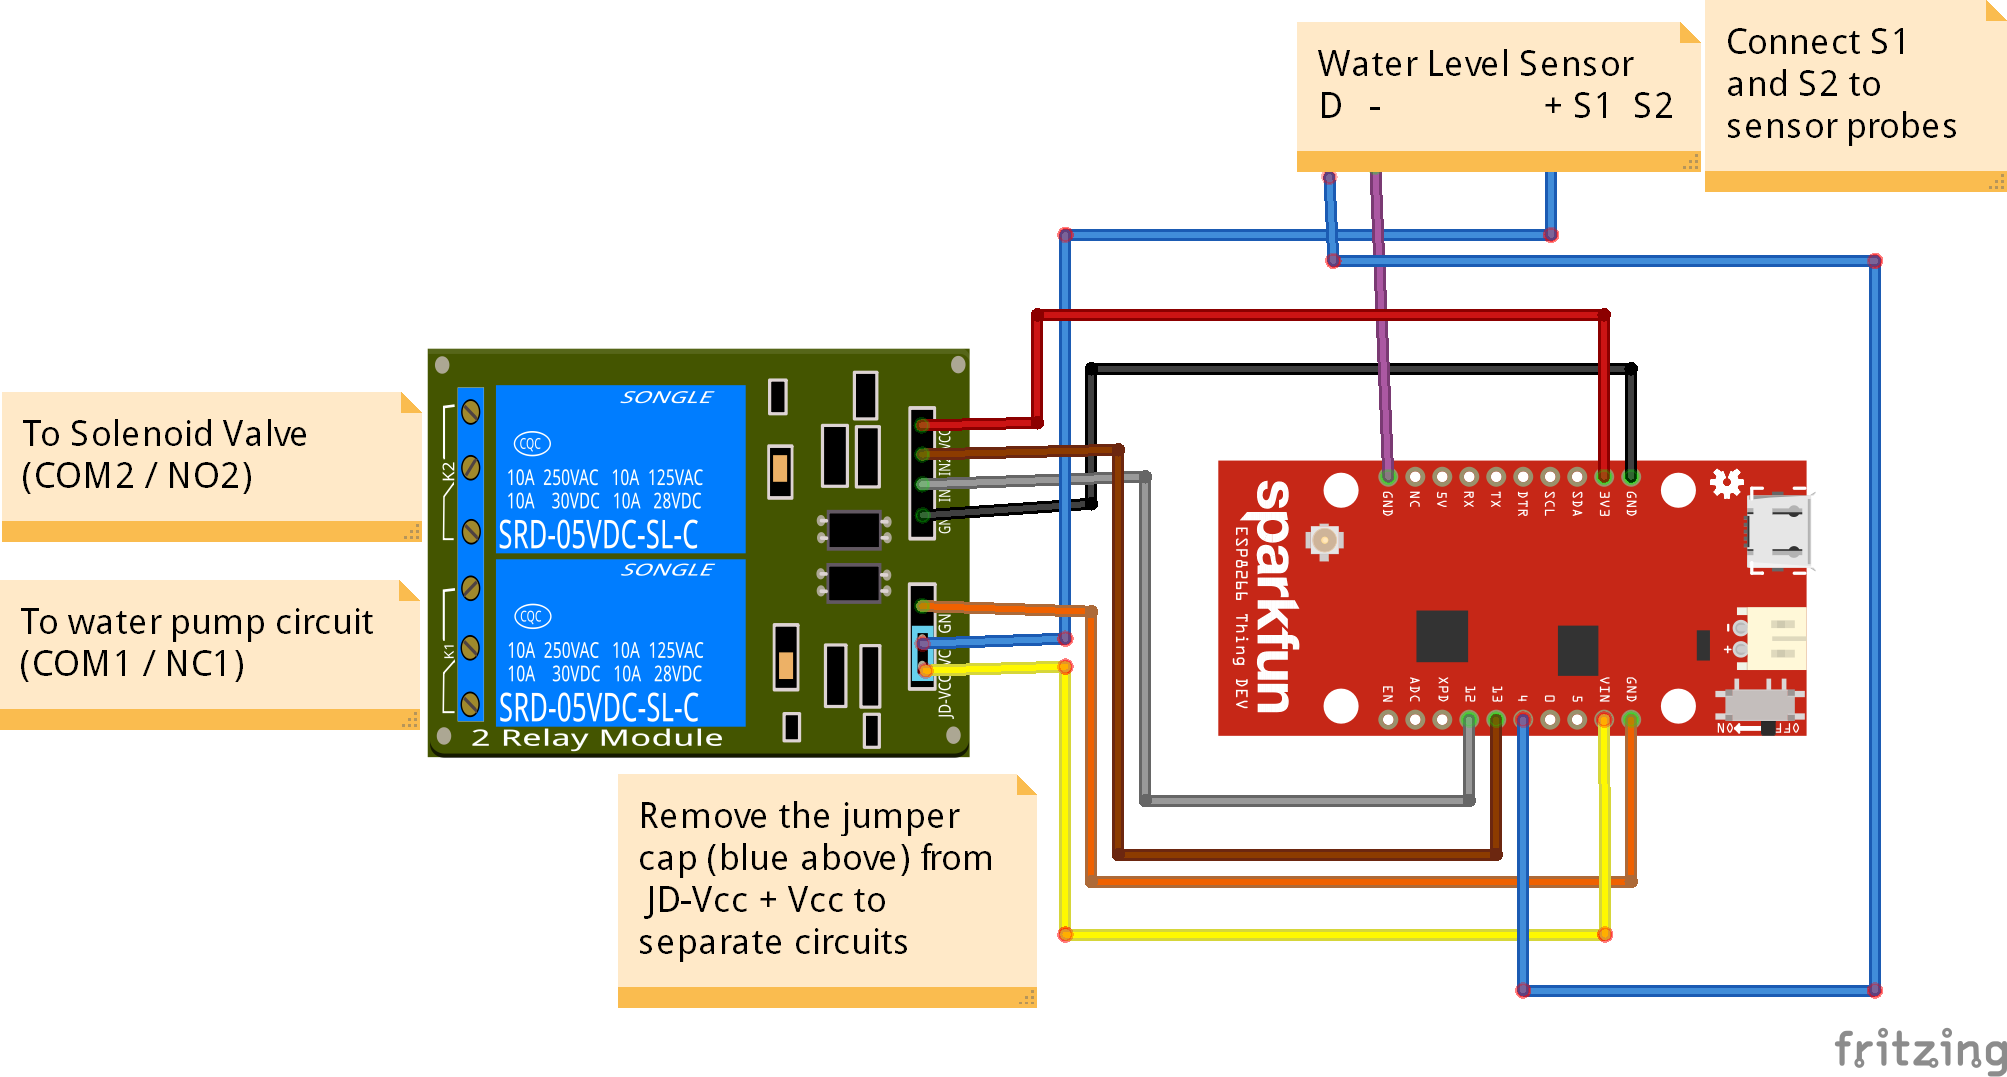 Automatic Water Source Switching And Monitoring System Hc Sr04 Schematic Additionally Reverse Switch Wiring Diagram Thing Rele Sensor E Valvula Bb Qnfwhaikck